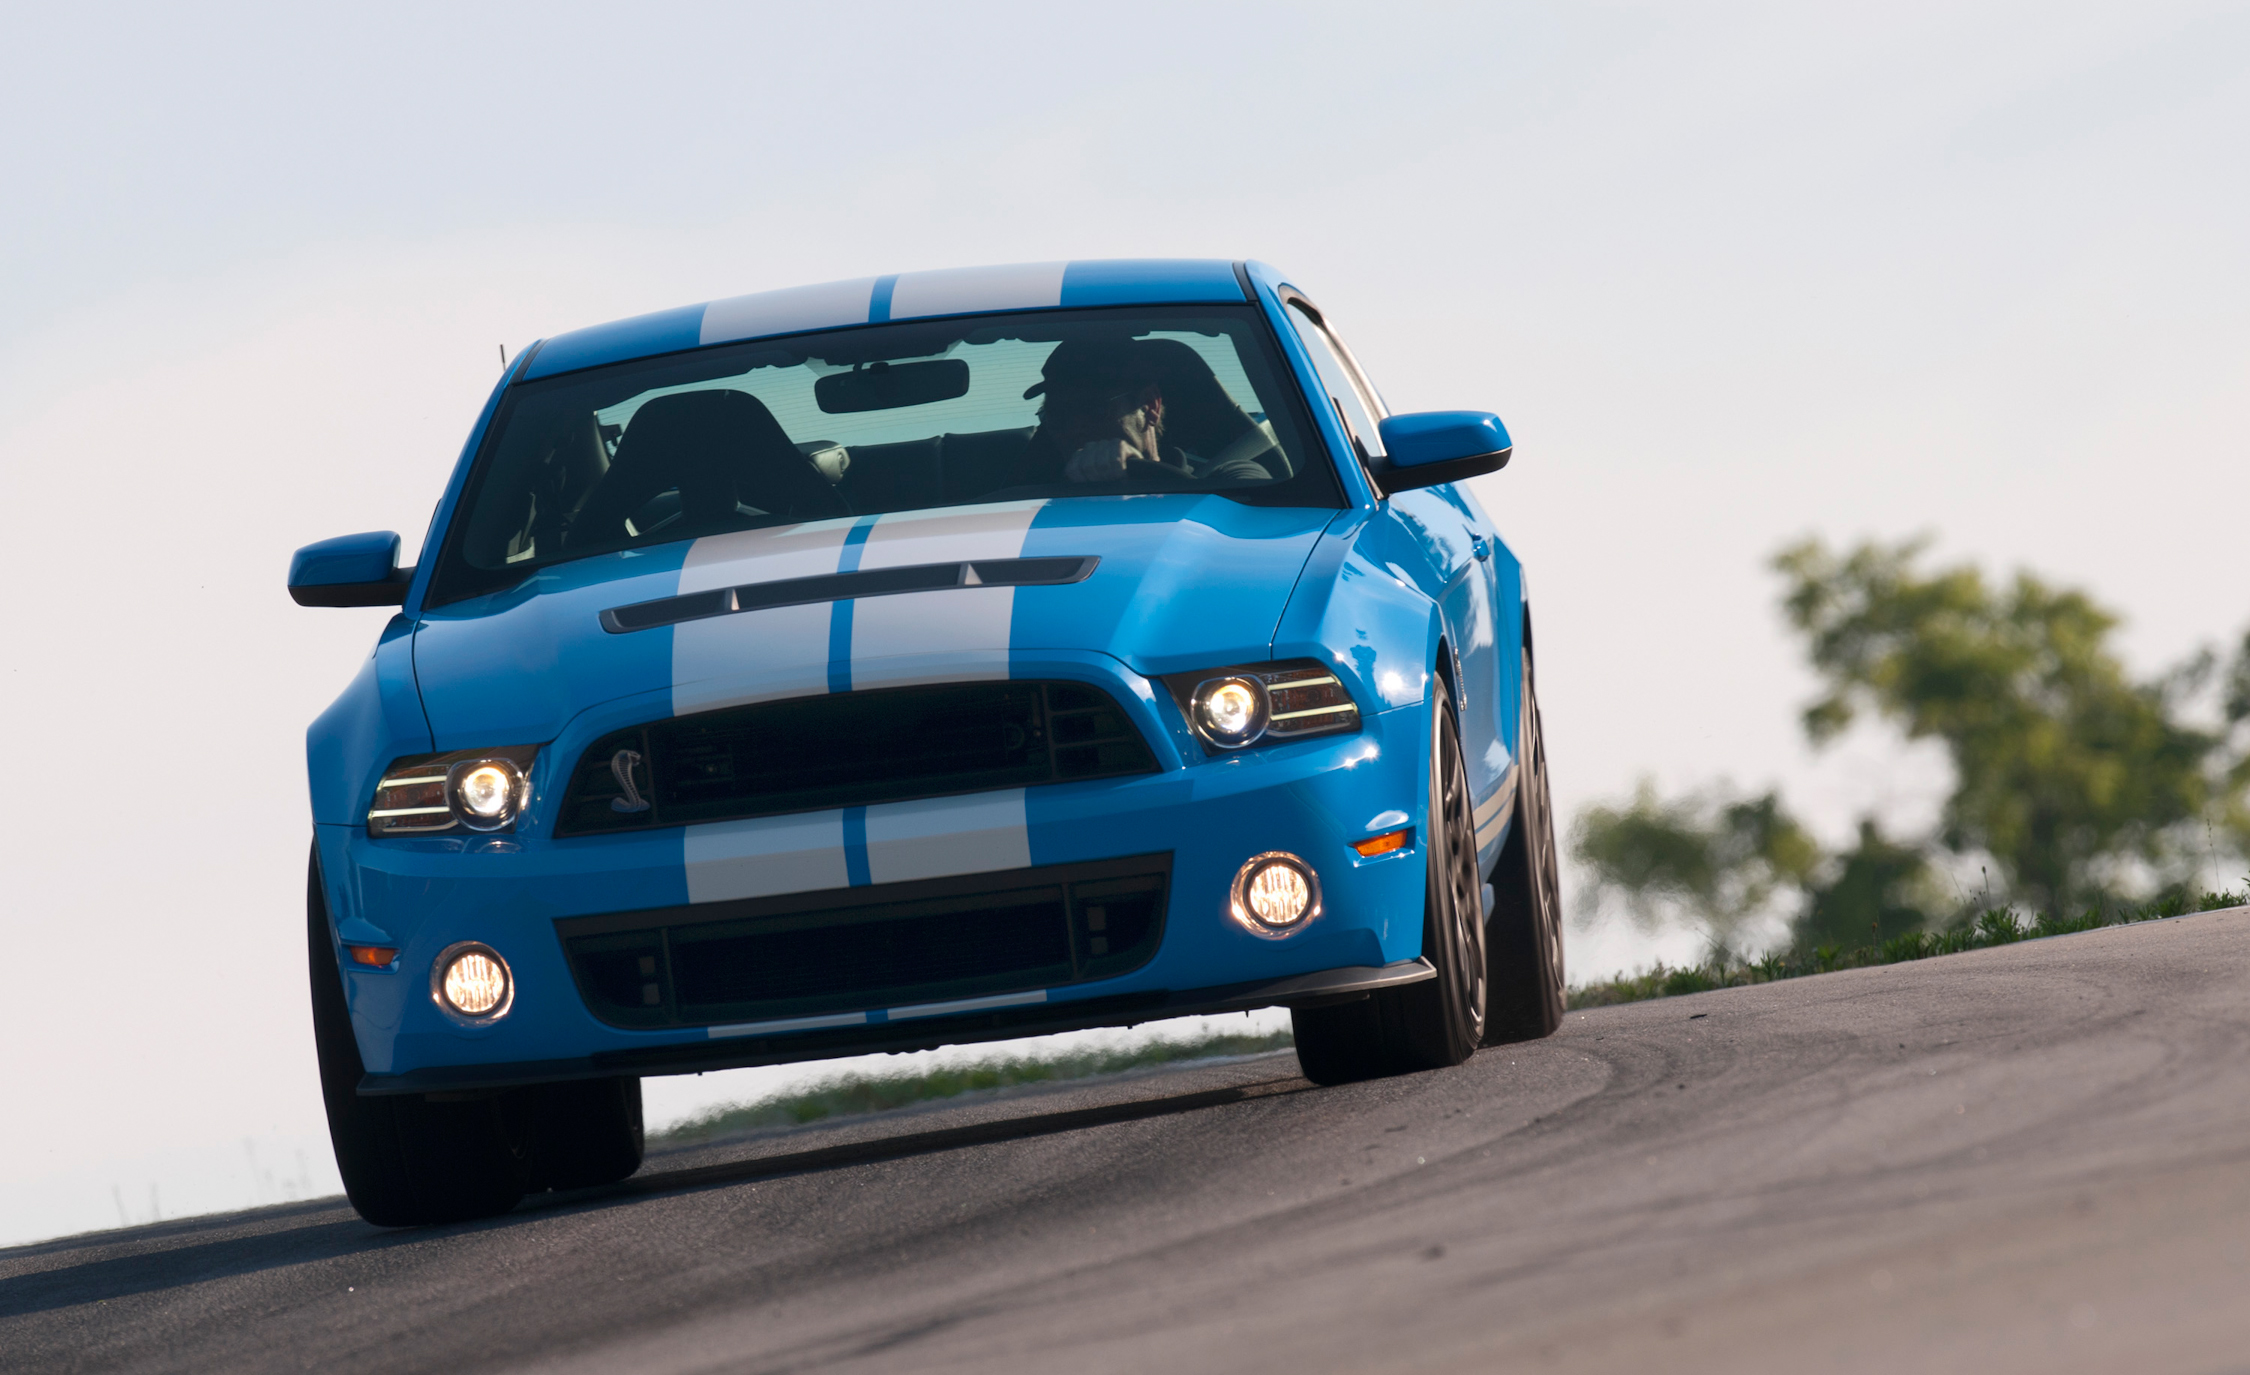 2013 Ford Mustang Shelby GT500 Blue Test Drive Front Preview (Photo 12 of 47)